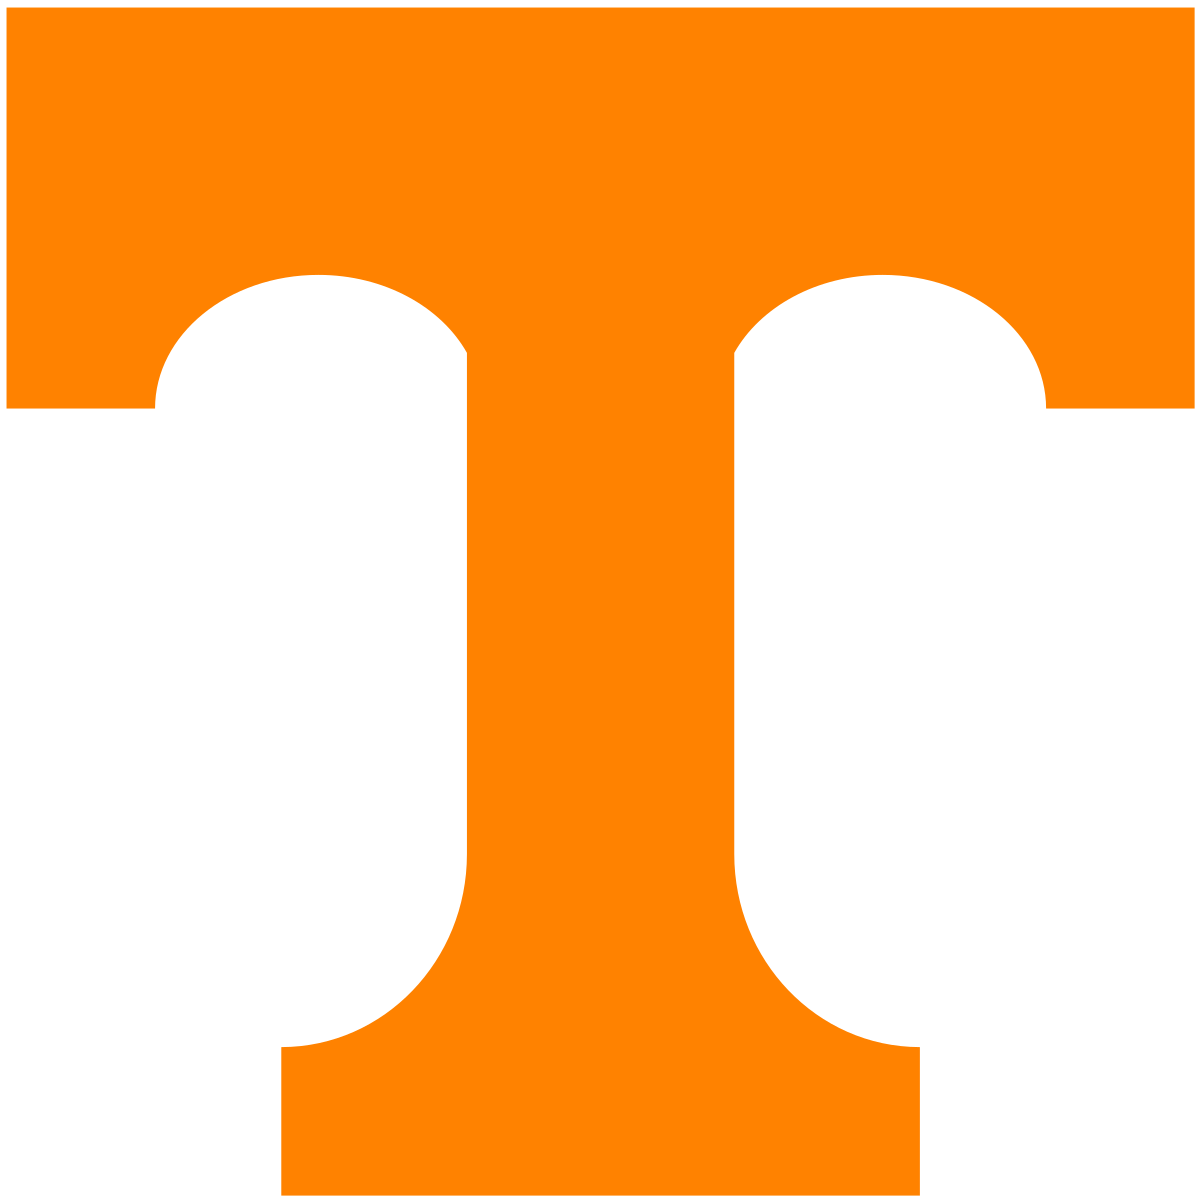 Number 1 clipart collegiate. Tennessee volunteers wikipedia